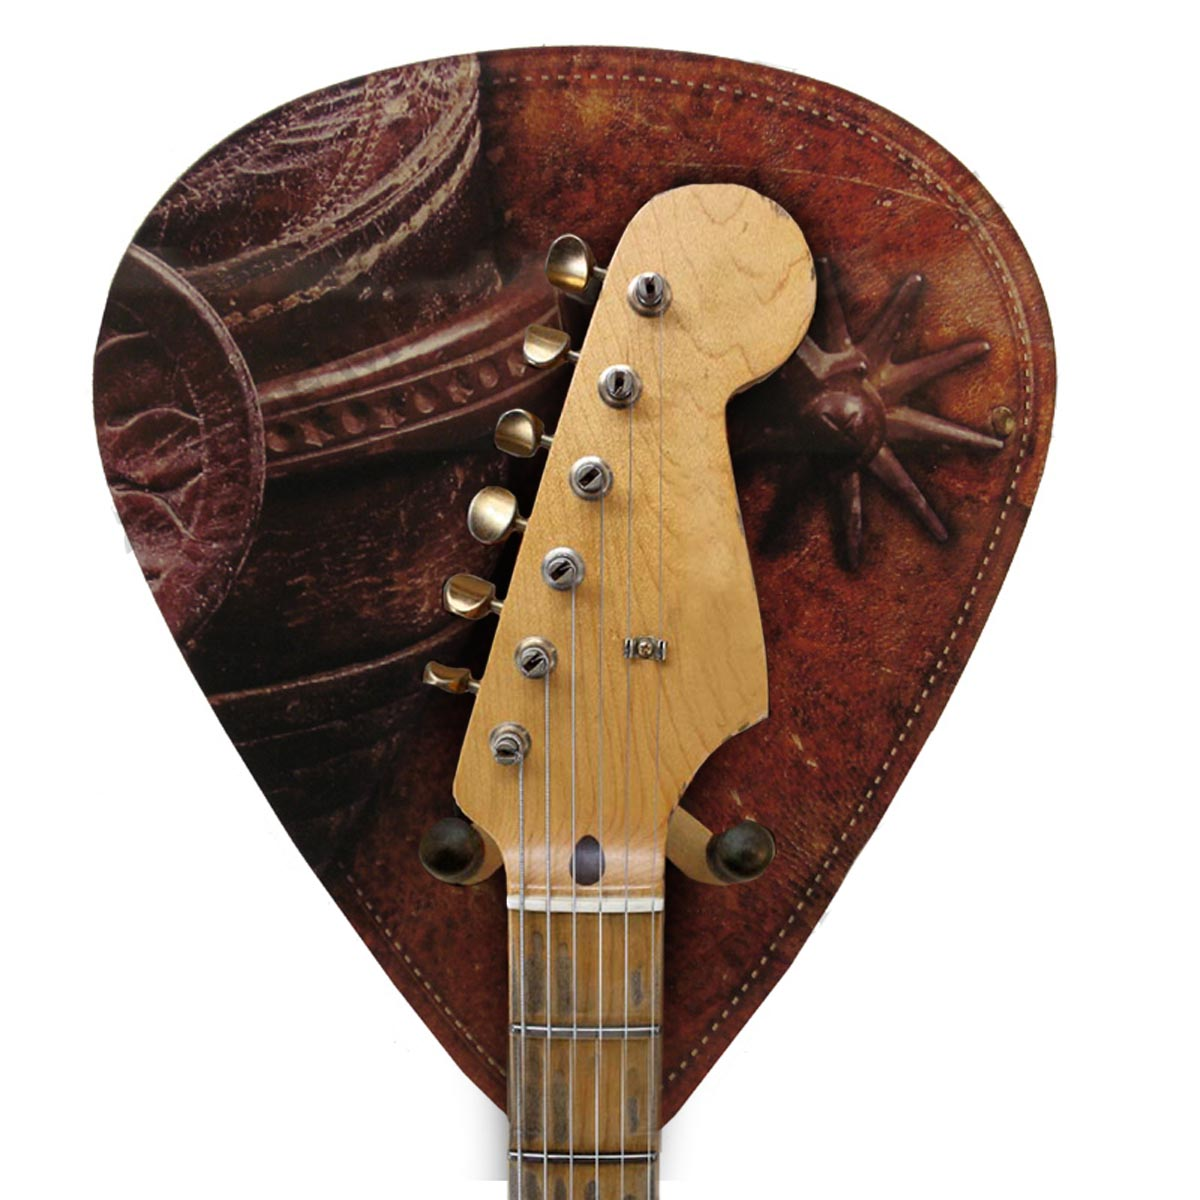 Axetreme Pick Guitar Wall Hanger™ -  Includes String Swing Hanger - Western Cowboy Spurs